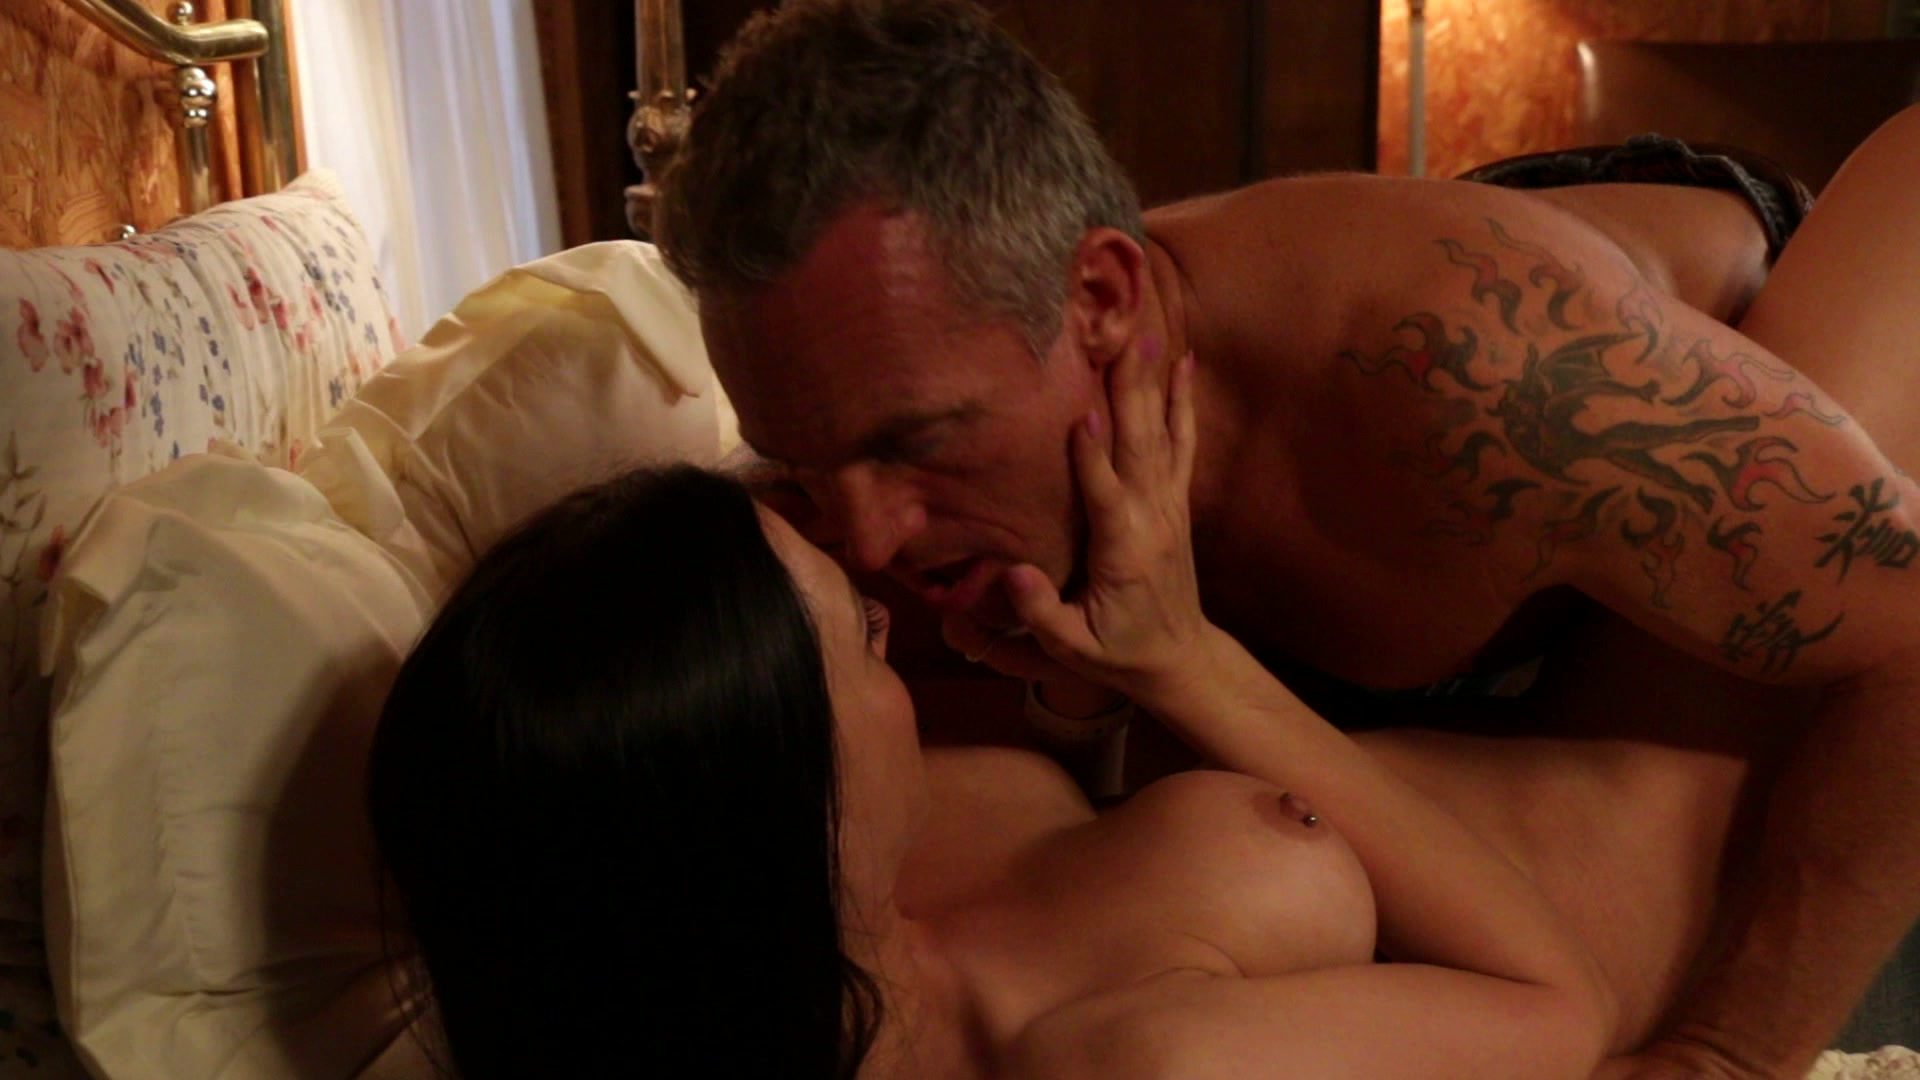 Scene with Rachel Starr - image 14 out of 20